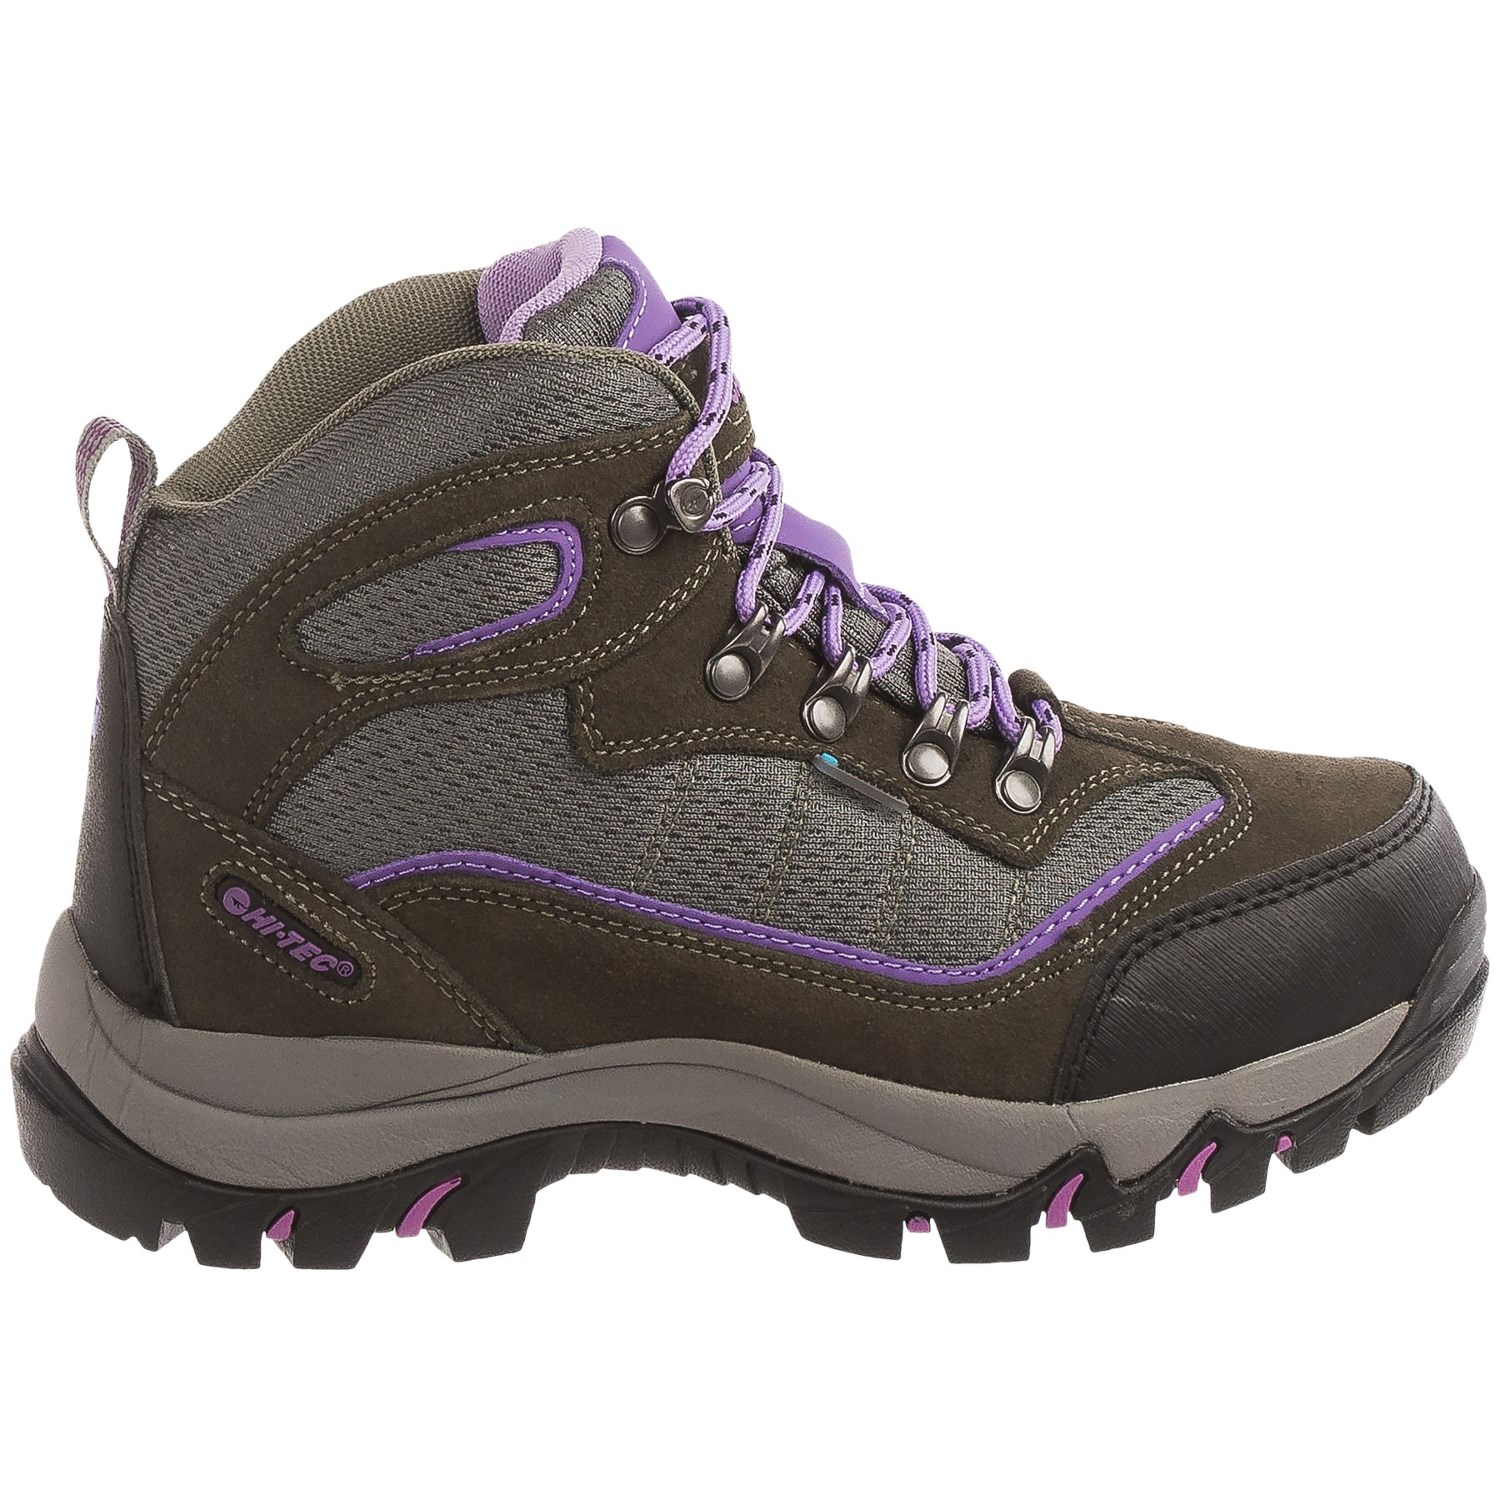 Womens Hiking Boots Mountain Design